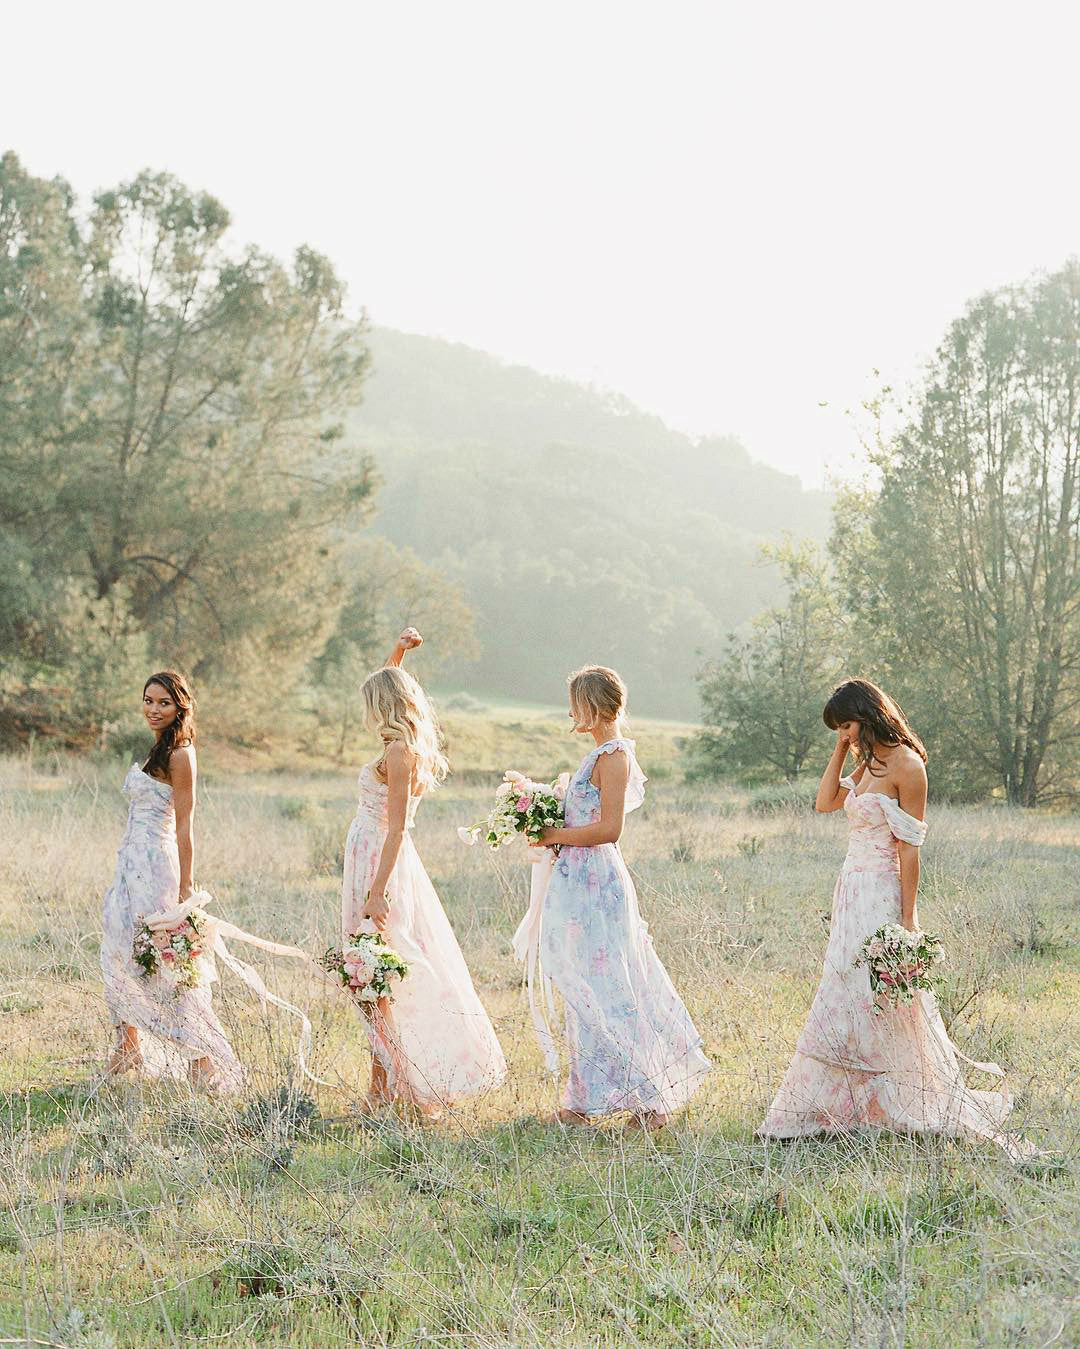 8 Bridesmaids Gifts To Make Your Girls Feel Special Too Bluboho